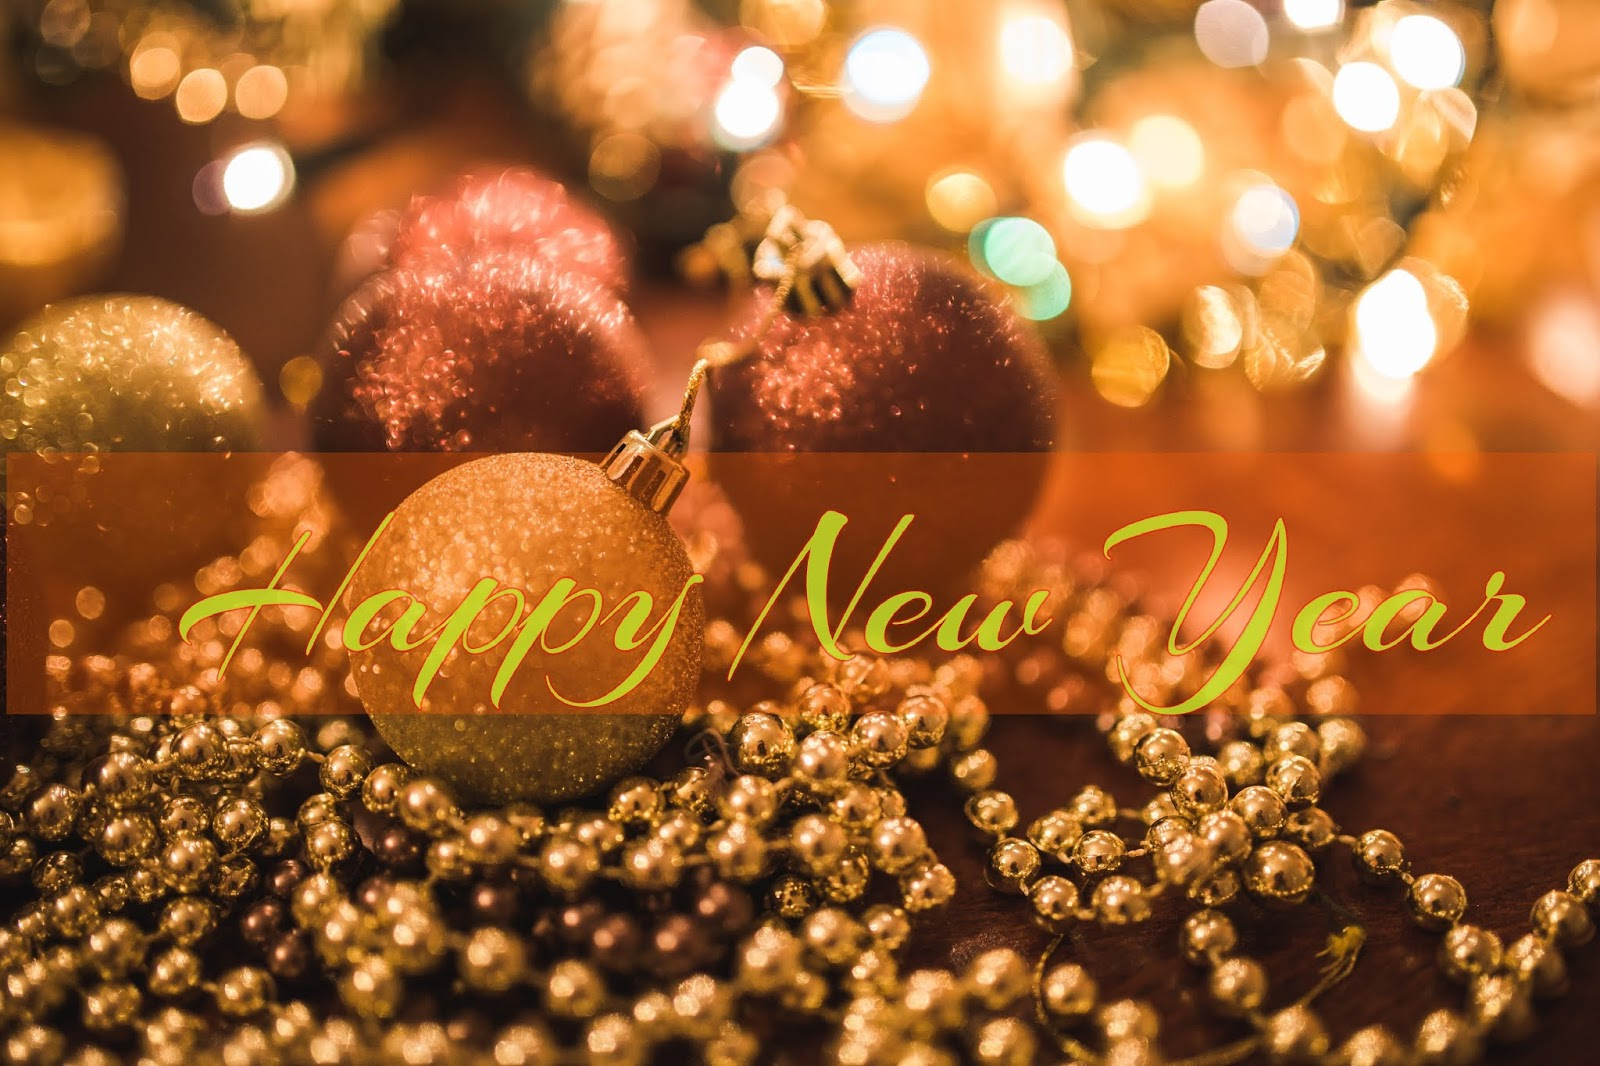 Happy New Year 2019 Images Wishes Messages Quotes Greetings